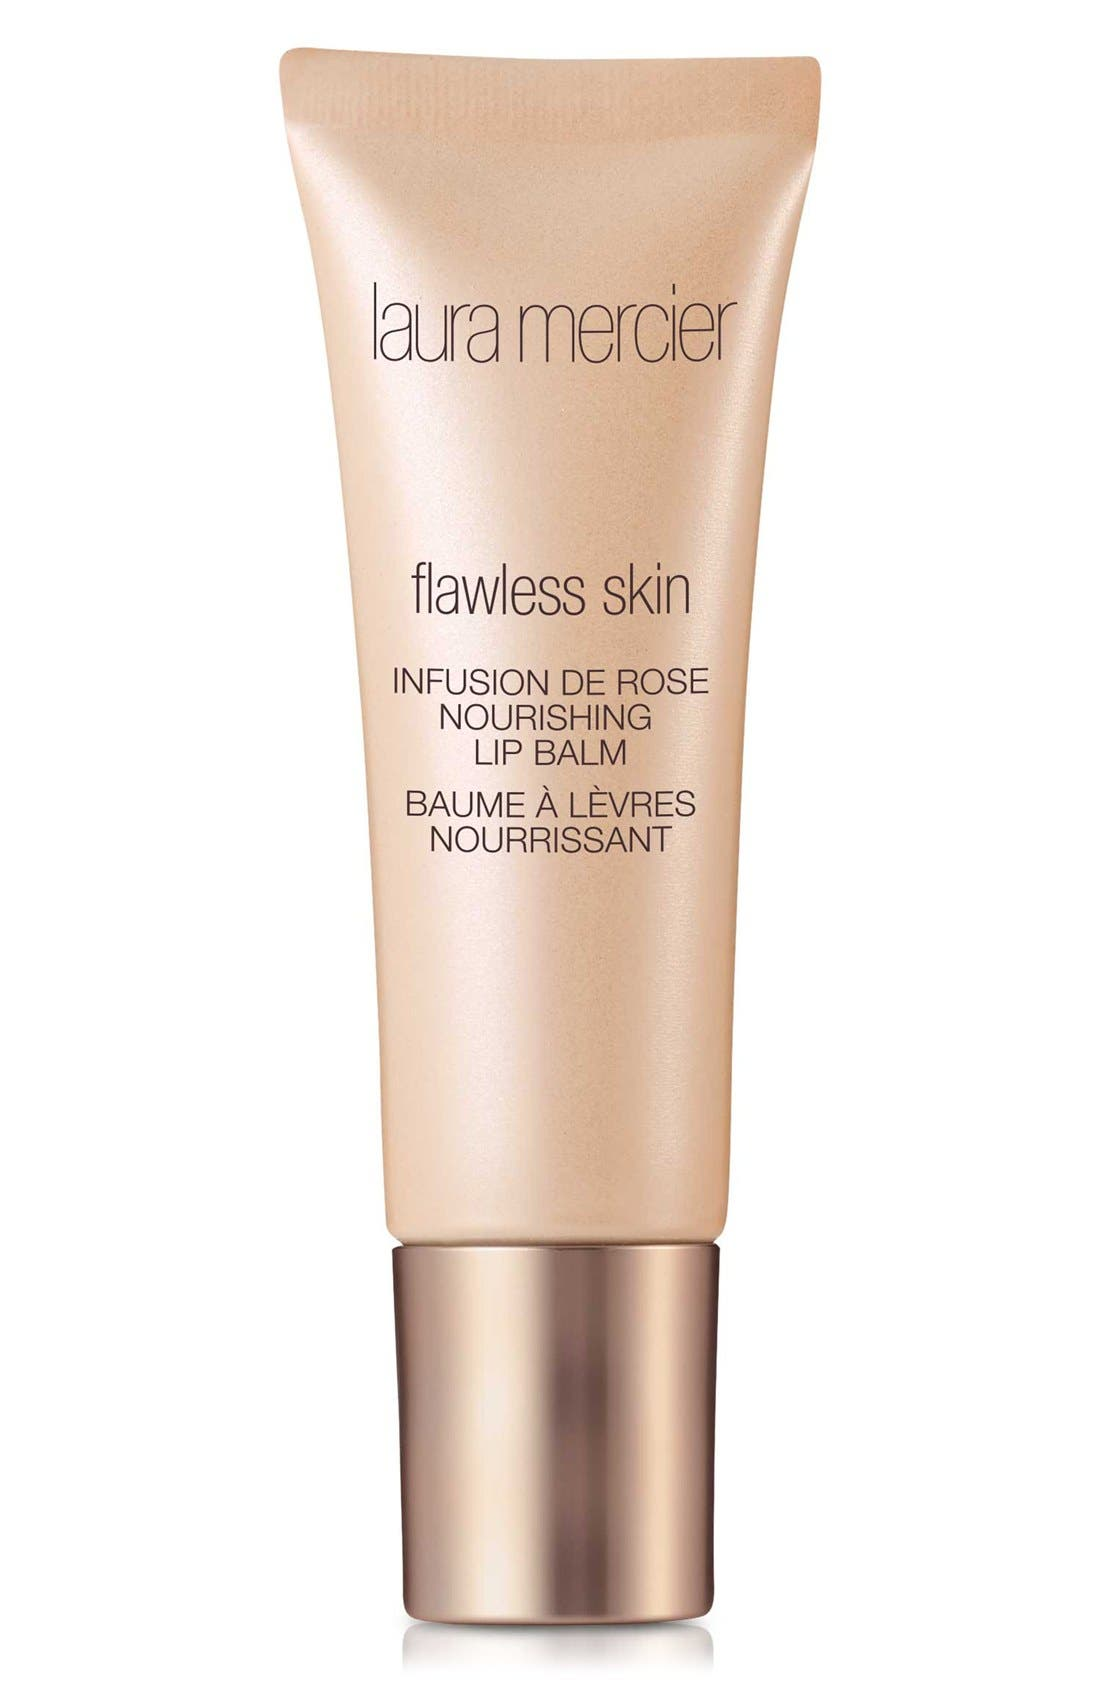 Laura Mercier 'Infusion de Rose' Nourishing Lip Balm